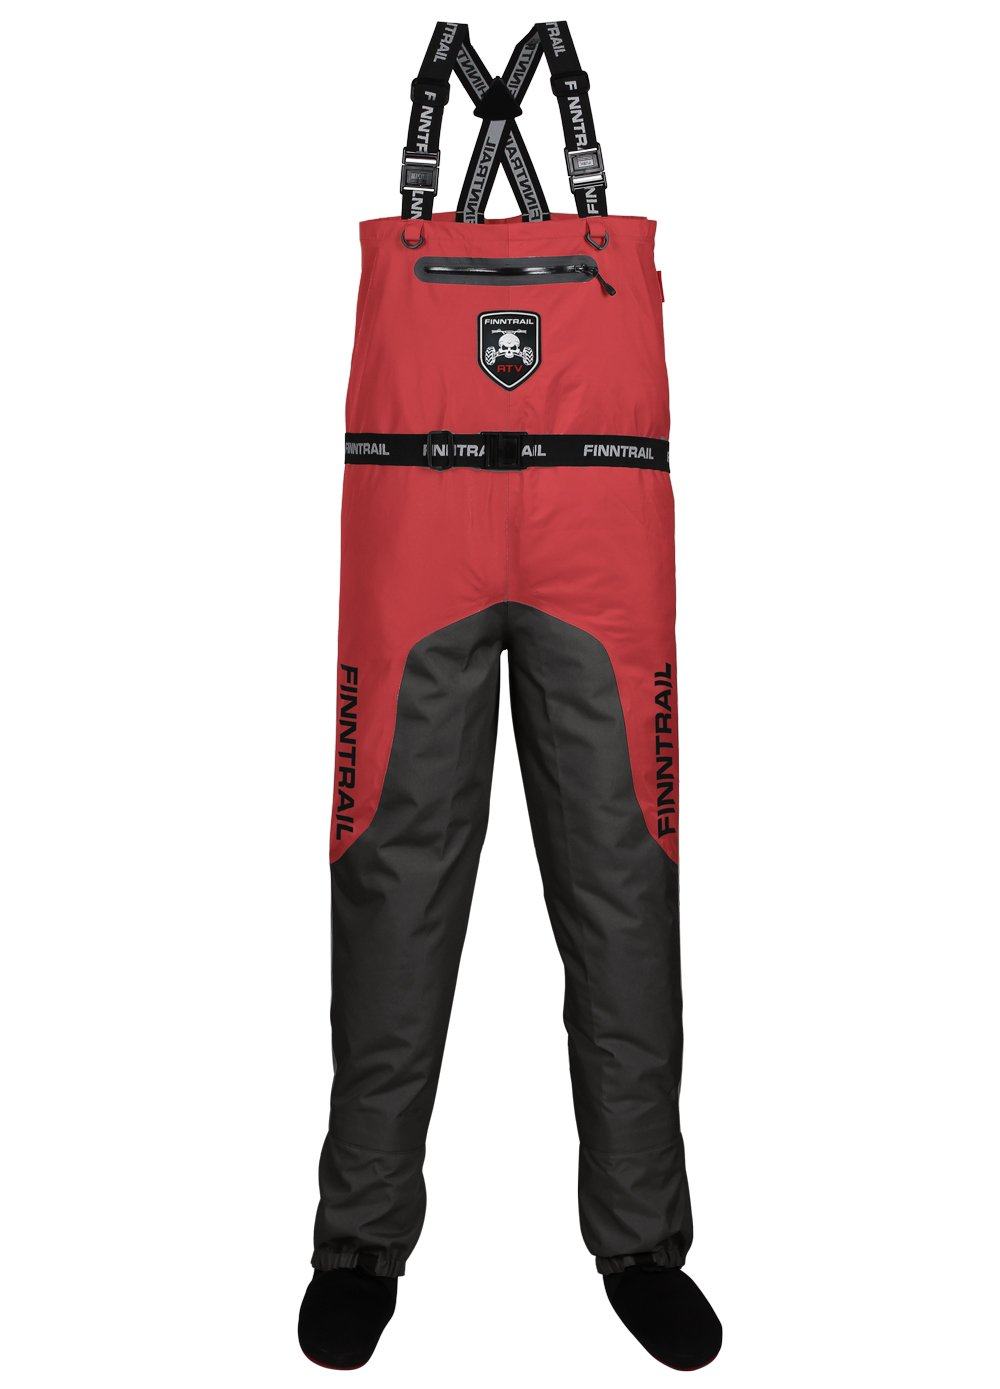 Вейдерсы Finntrail Aquamaster 1526 Gray/Red, размер XL